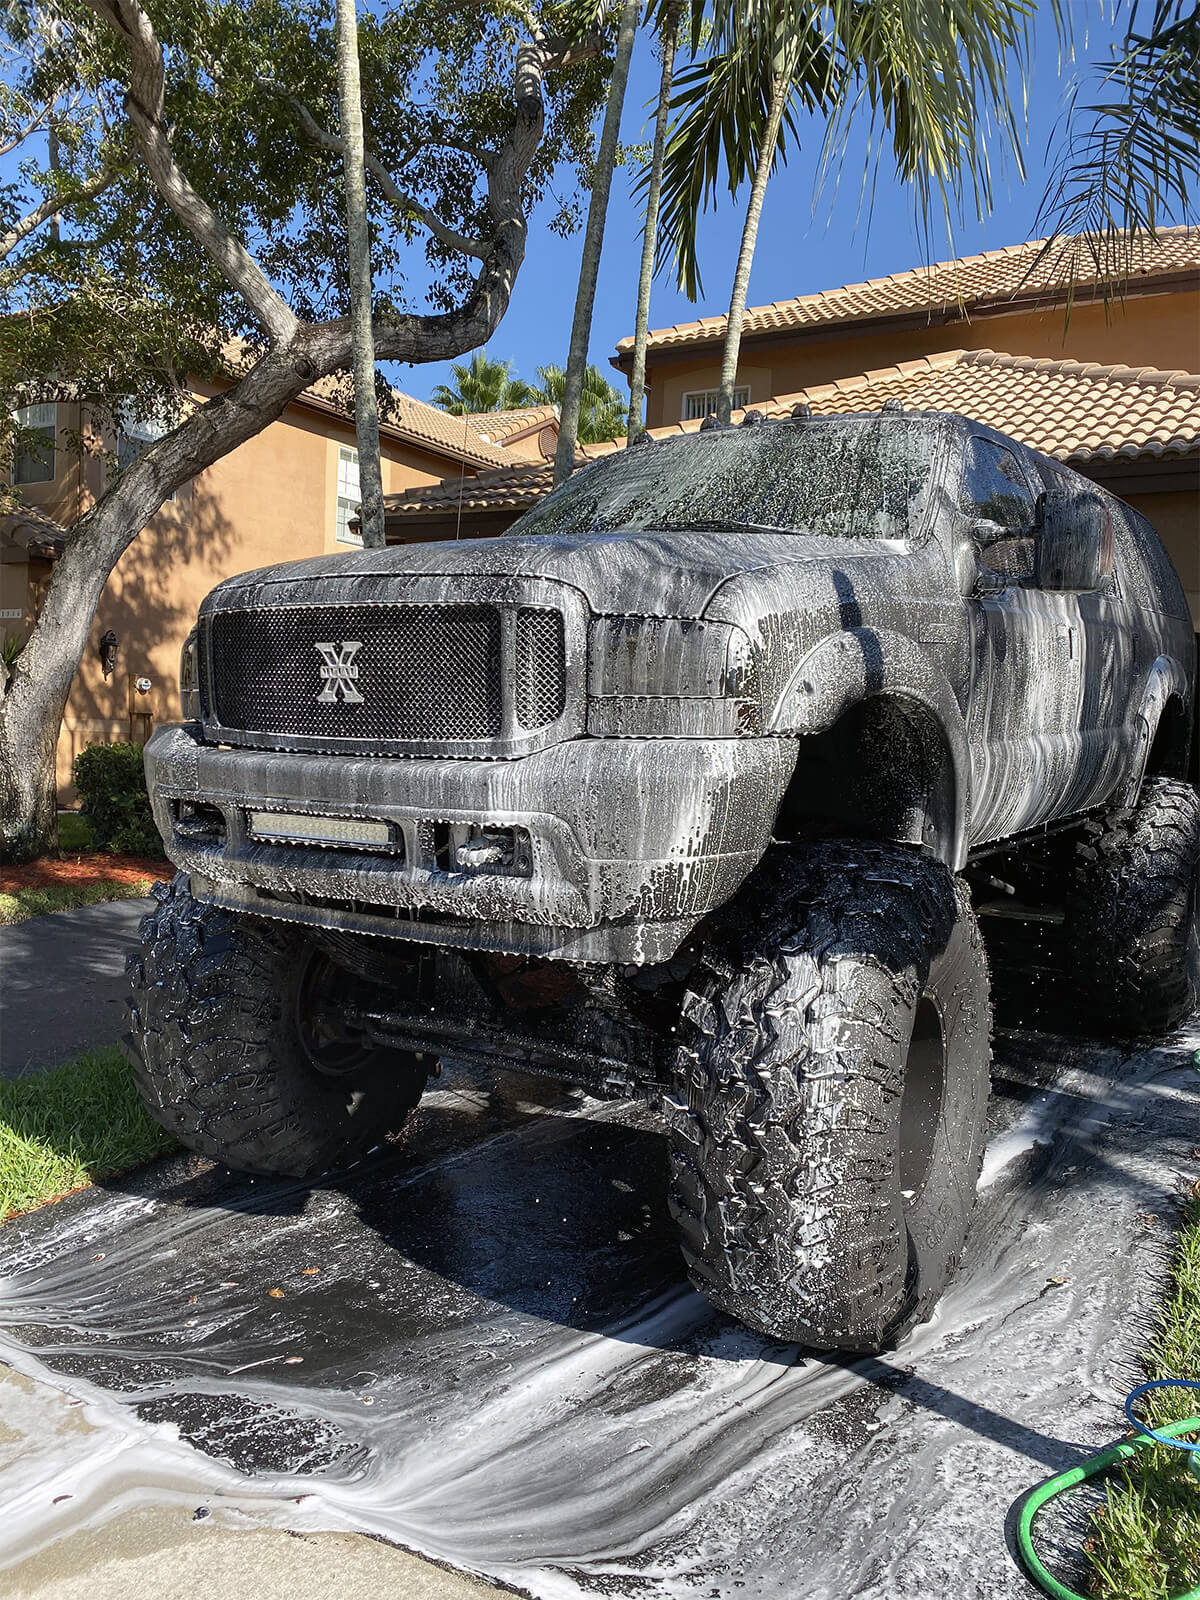 Washing a lifted truck